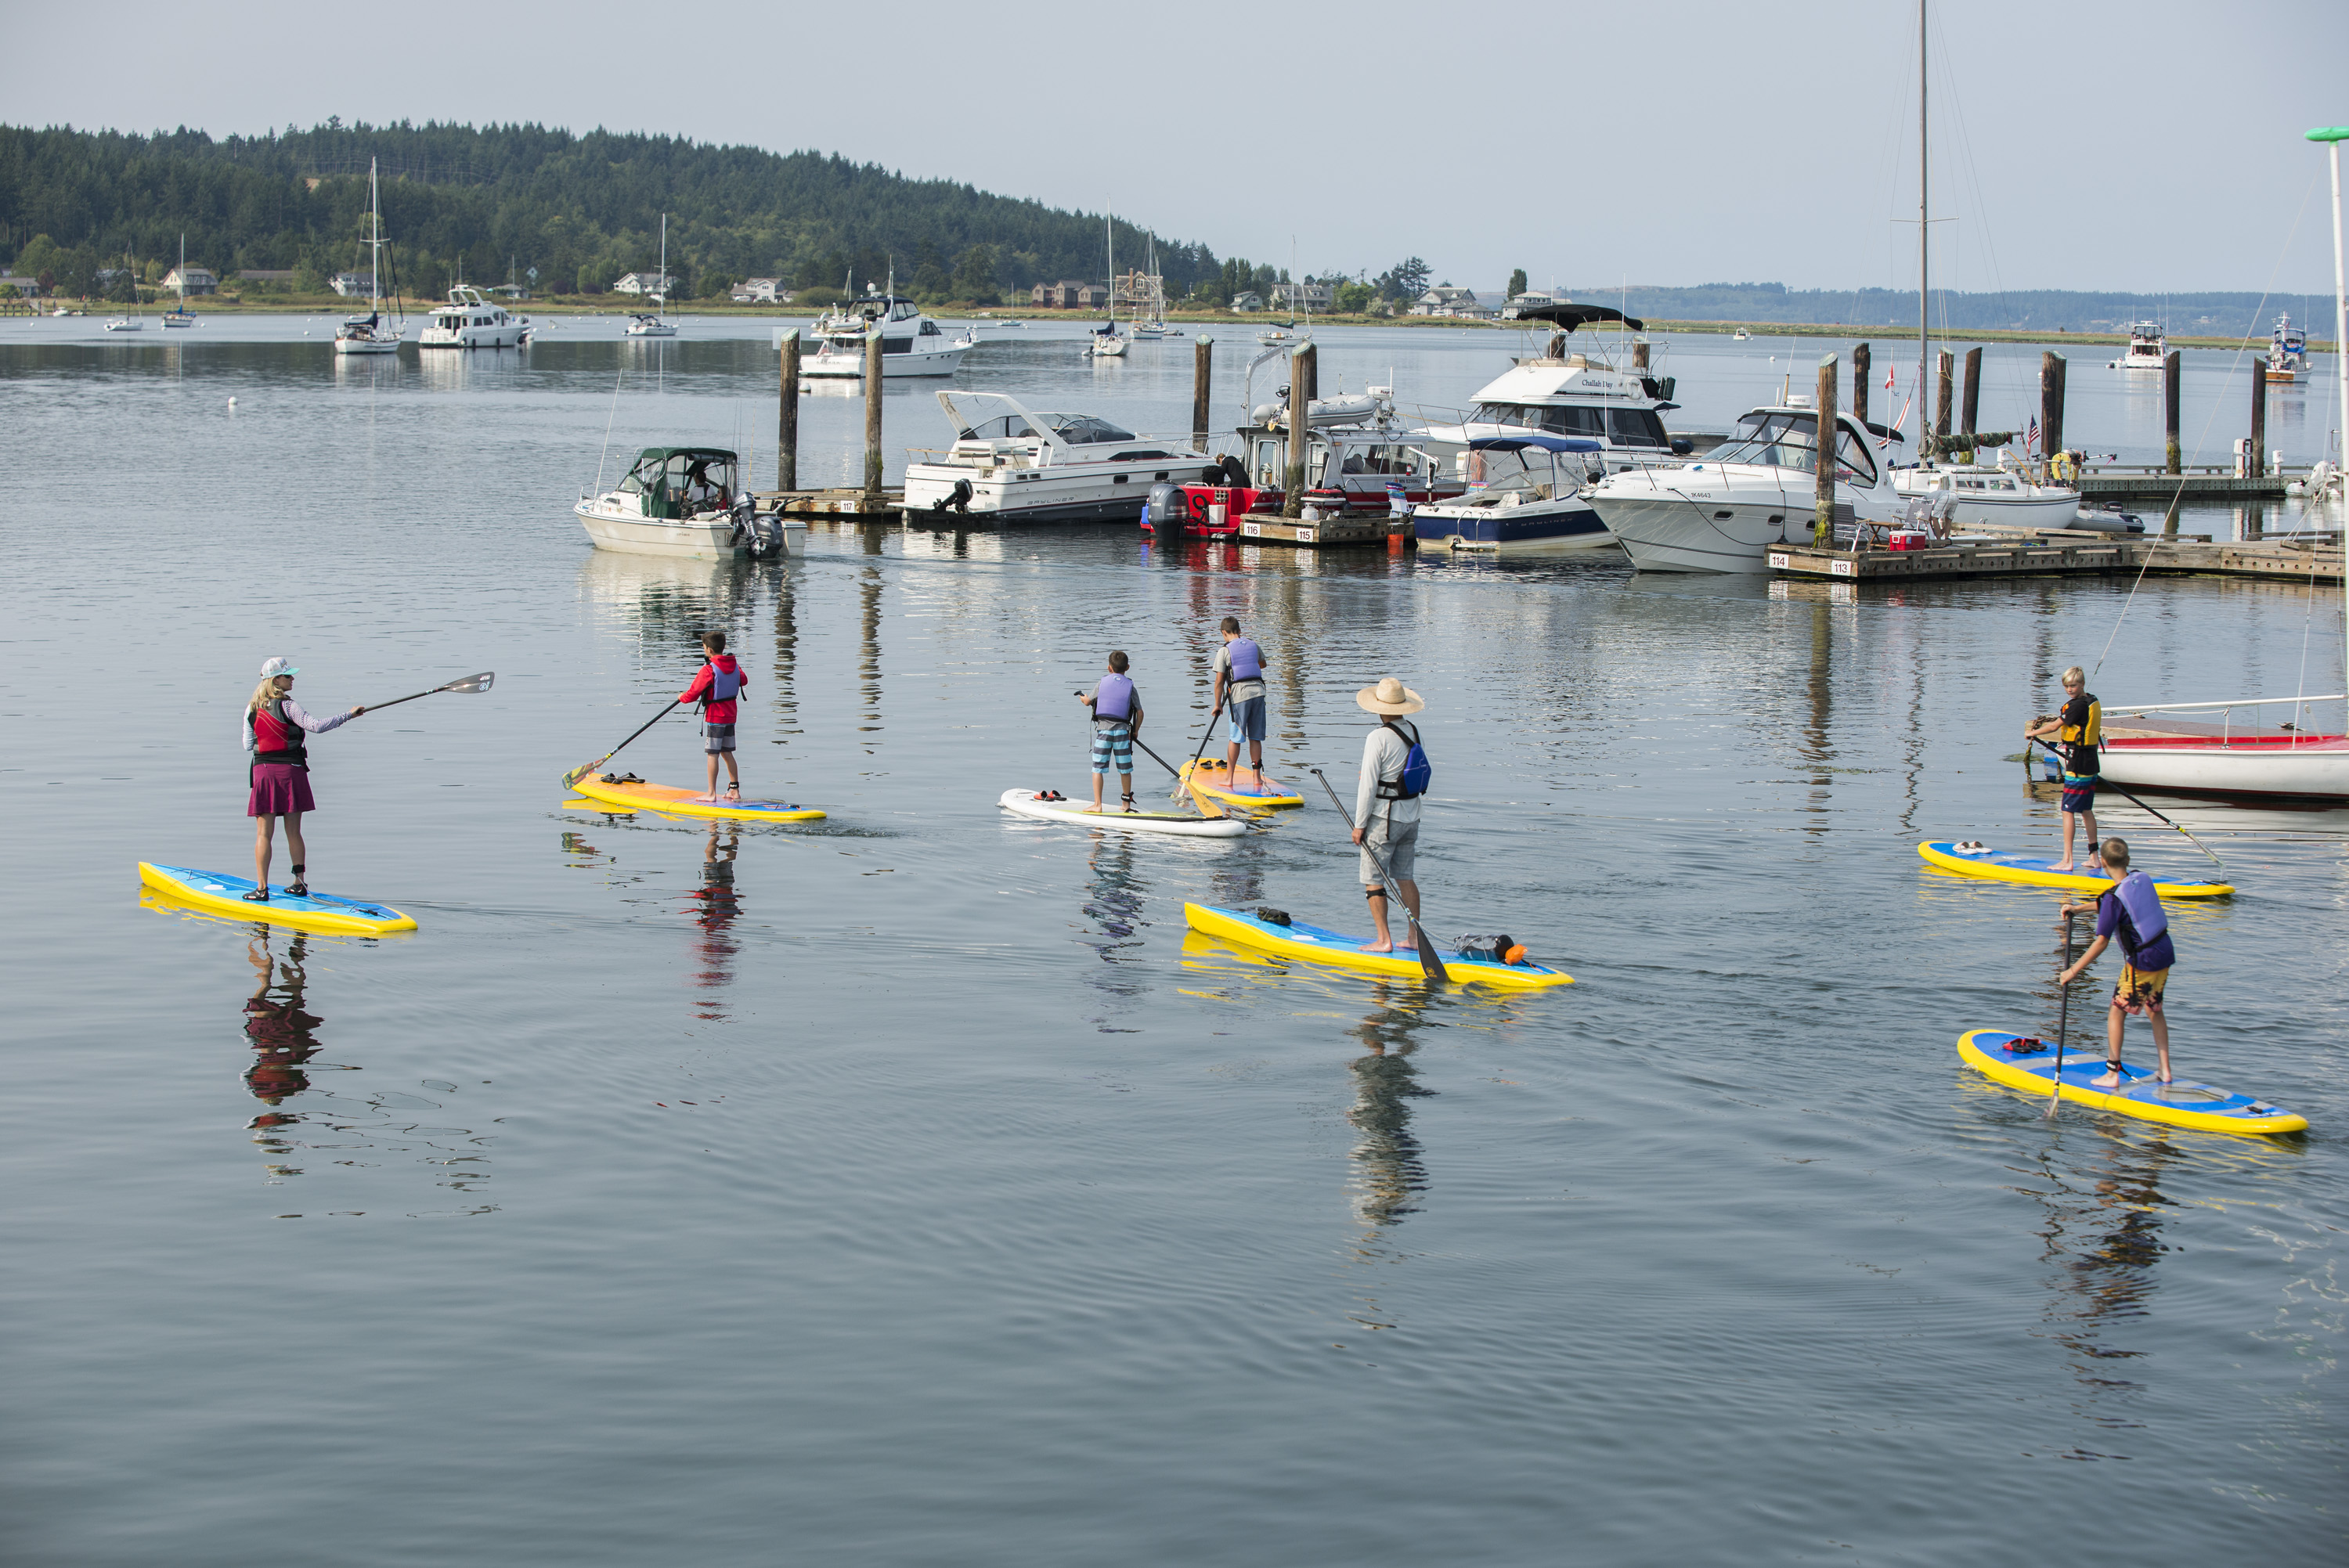 lopez island activities paddle boarding beach water